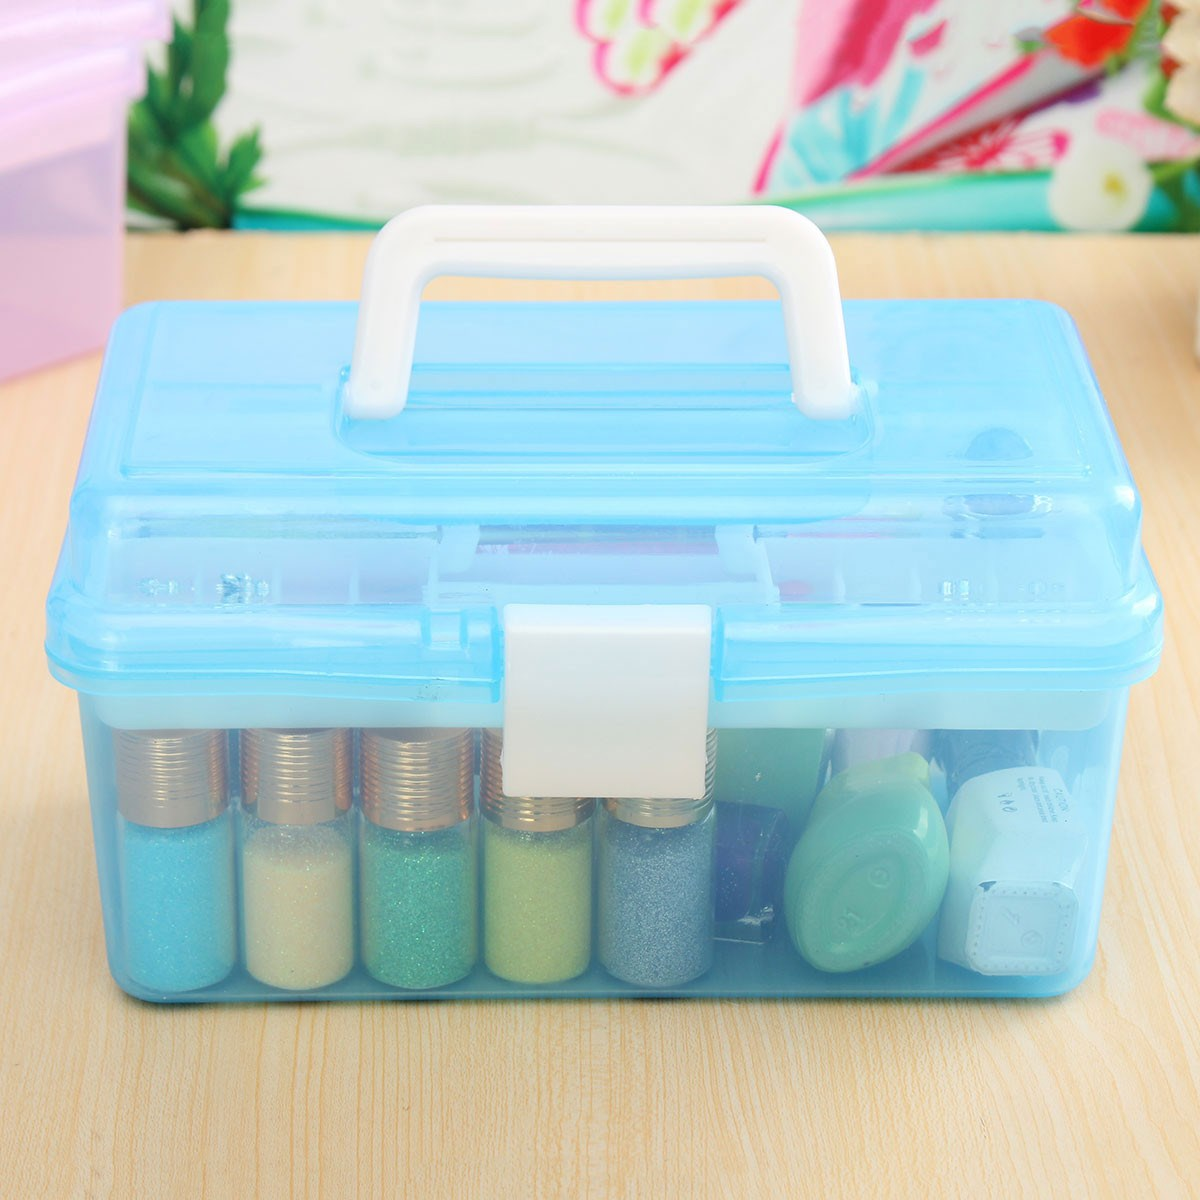 Crafts storage containers drawer letterpress cube by for Craft storage boxes plastic